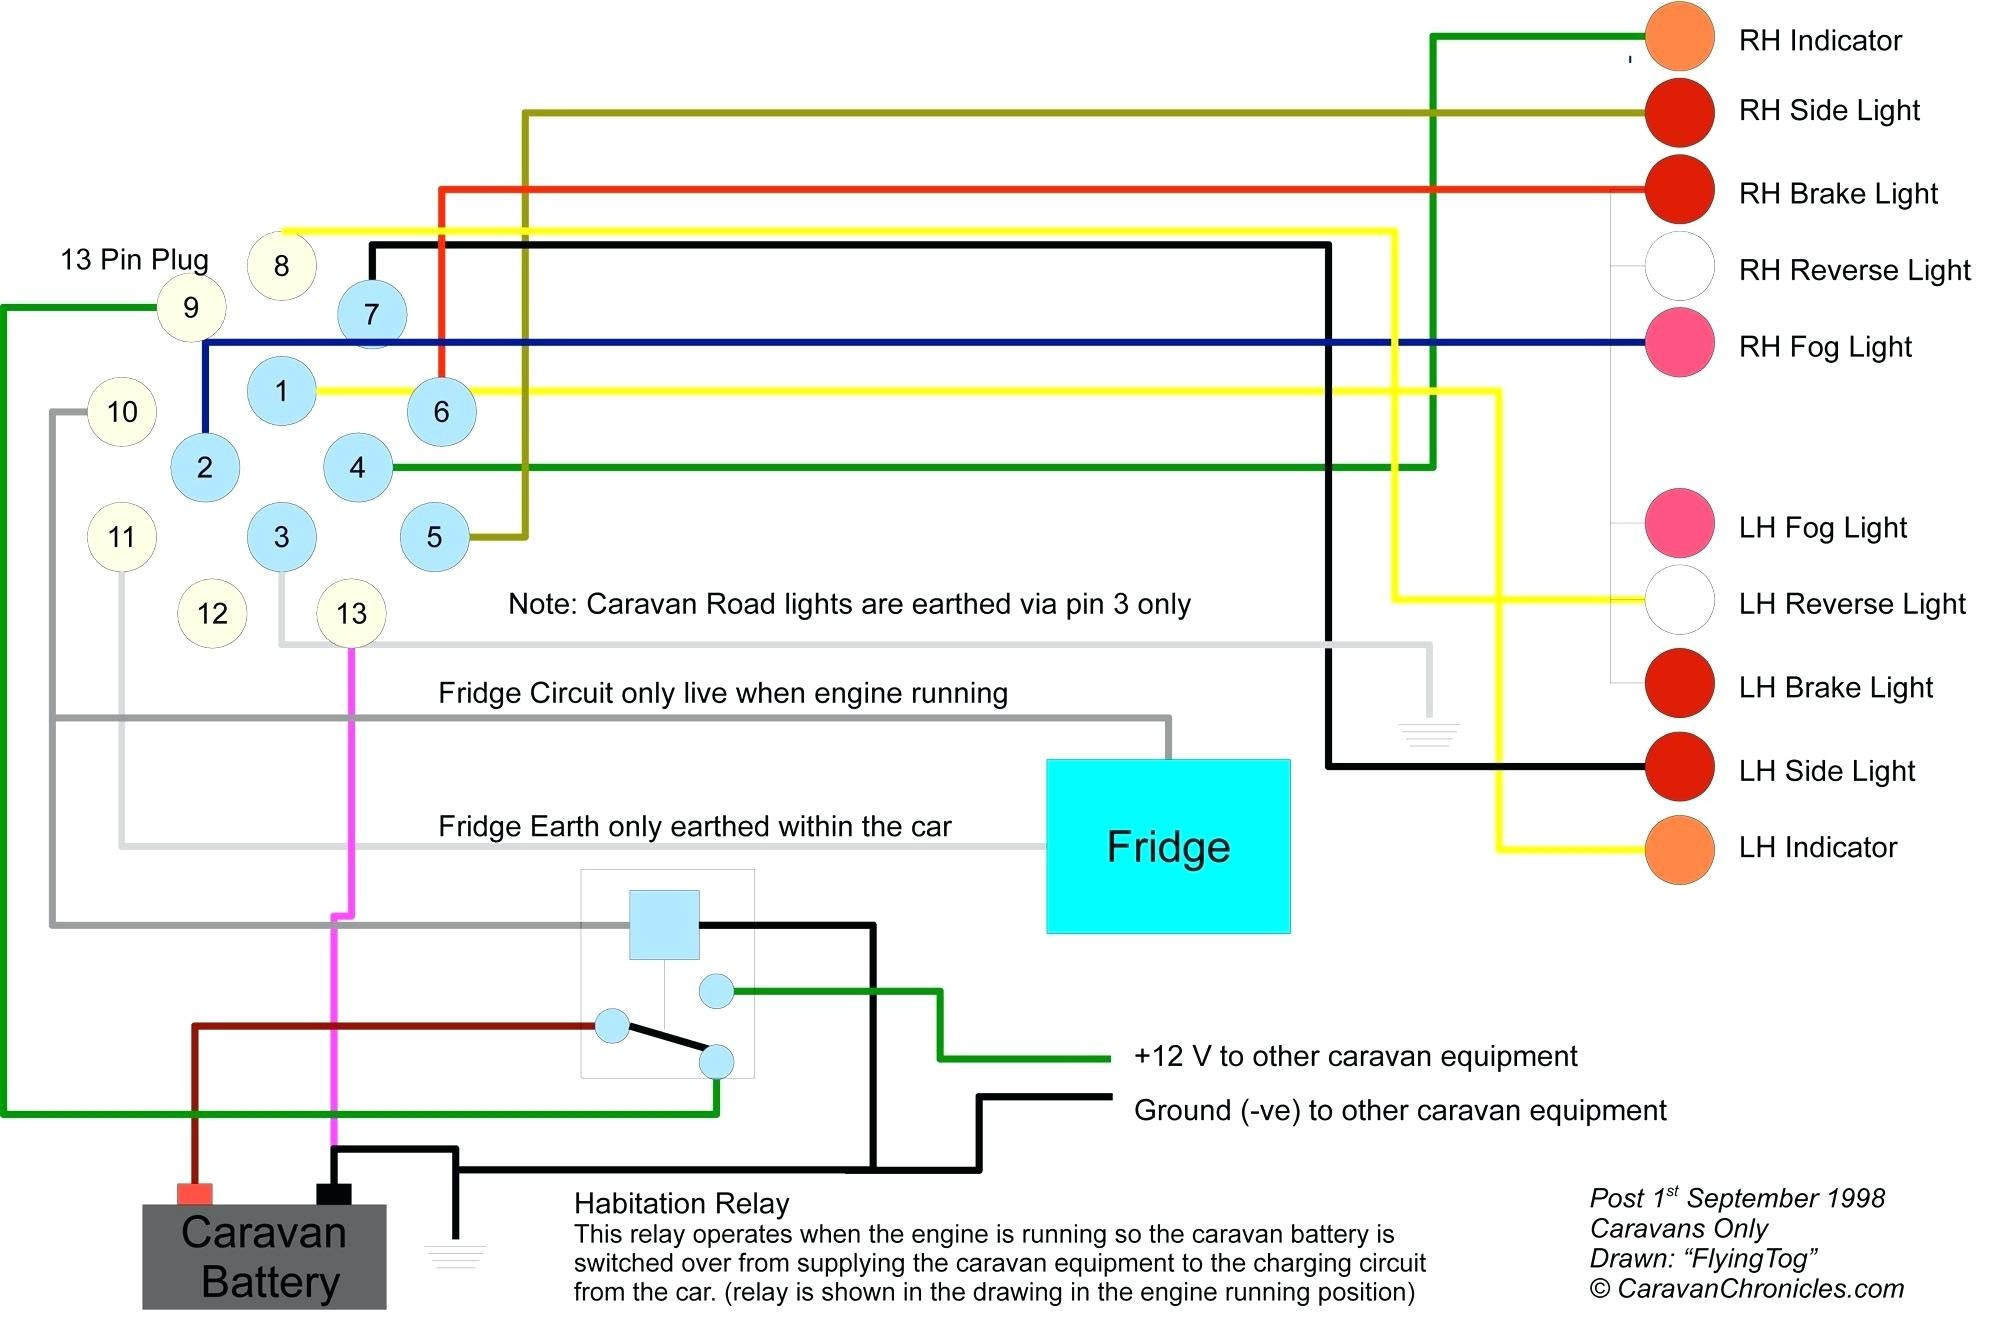 Trailer Plug Wiring Diagram 7 Way New 6 Wire Seven Pin Throughout - Trailer 13 Pin Wiring Diagram